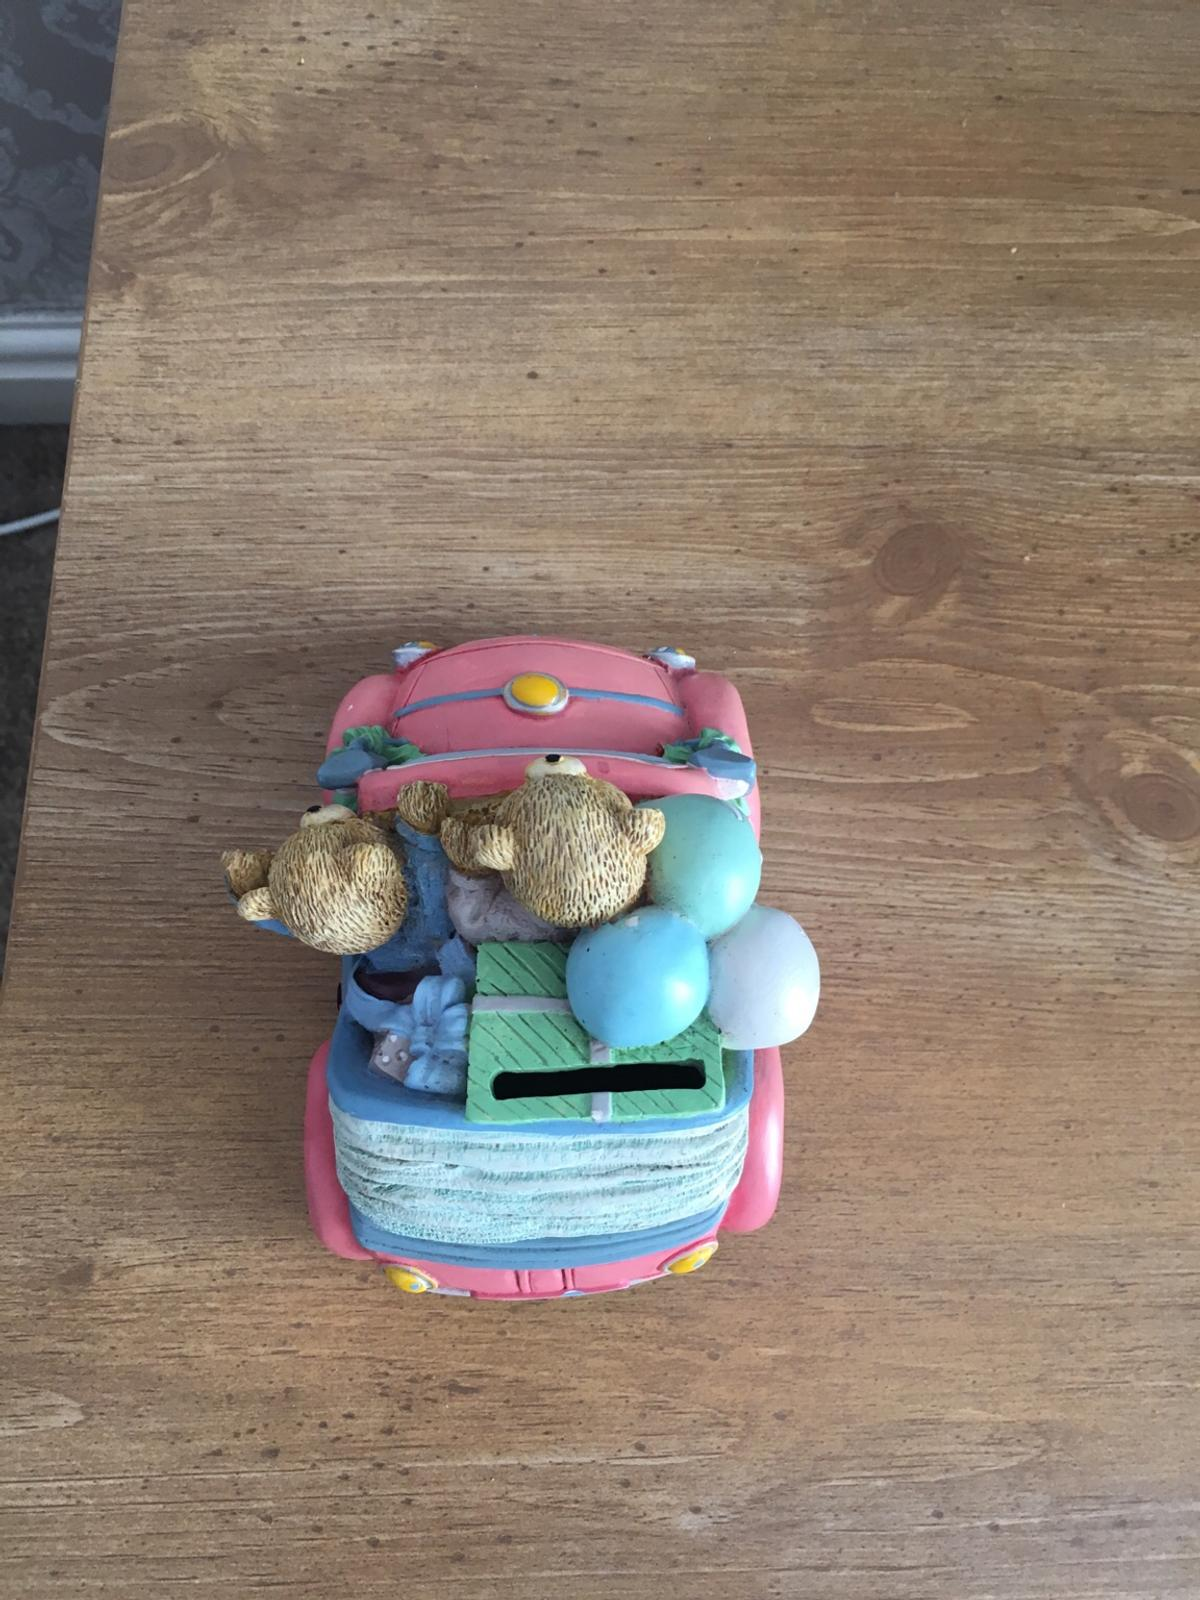 Cute teddy bear in pink car money box in WS10 Sandwell for £2 00 for